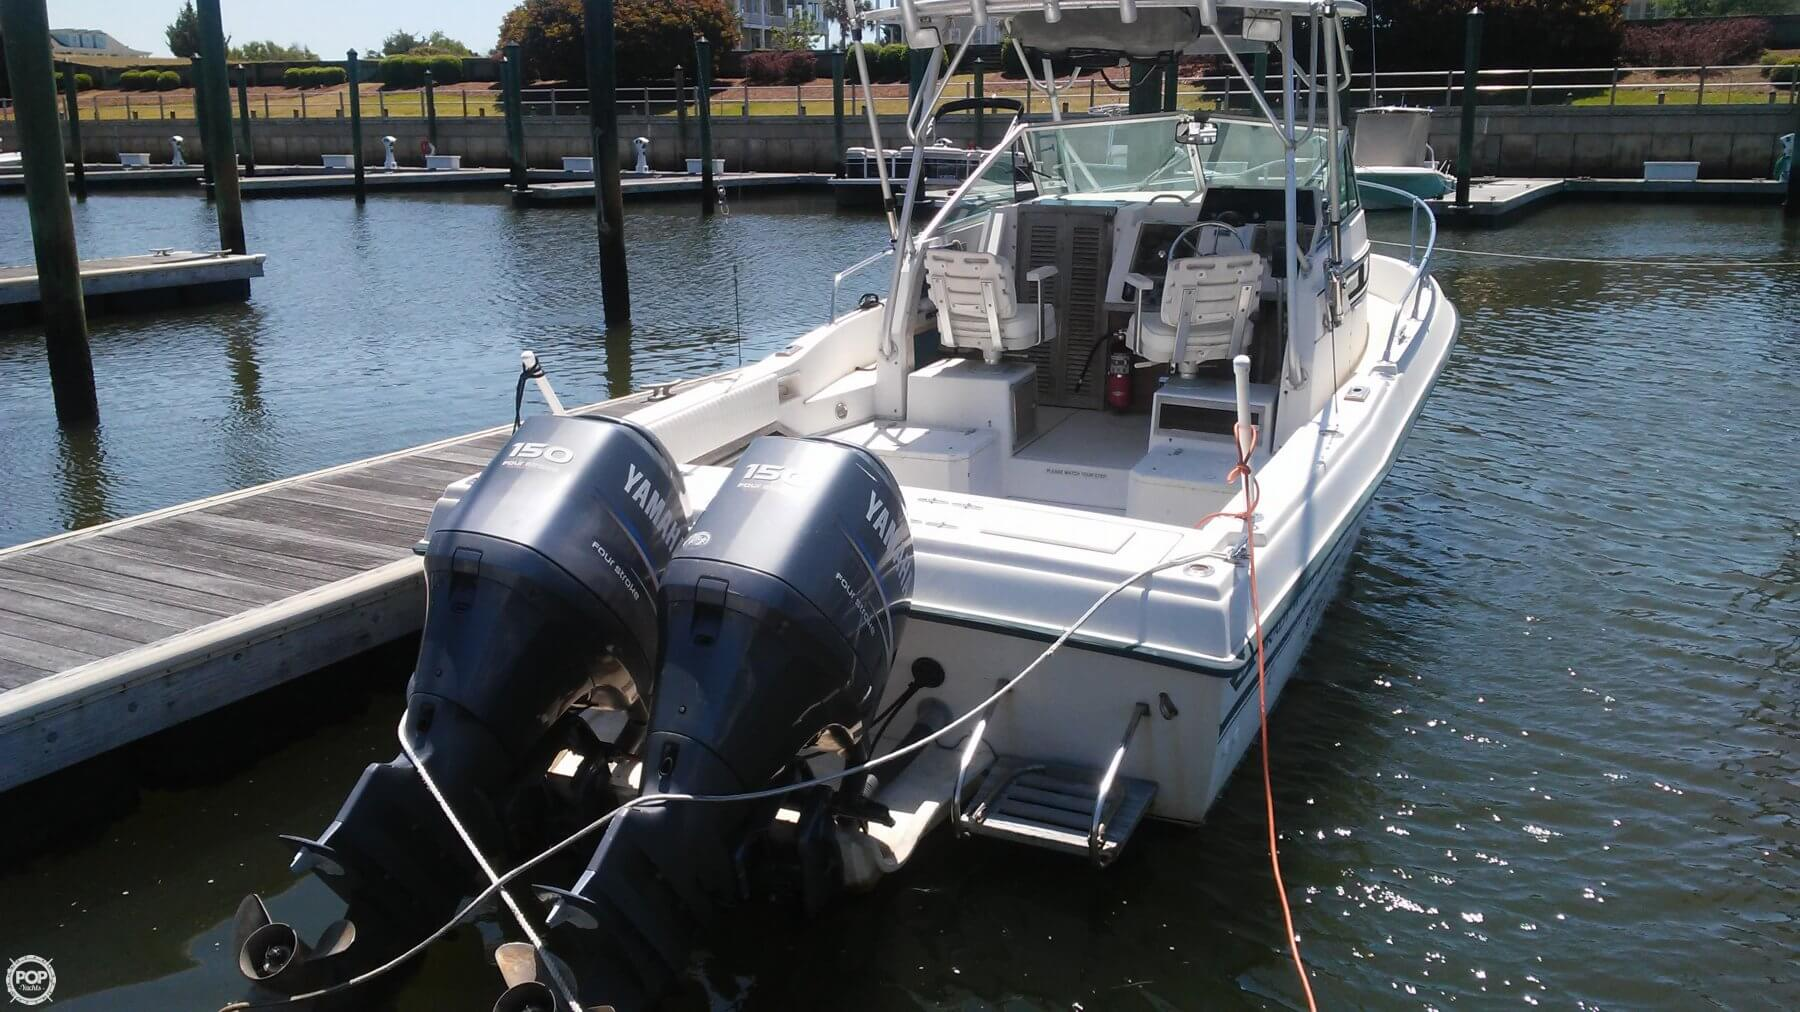 Grady-White 232 Gulfstream boat for sale in Supply, NC for $23,000 | 121045